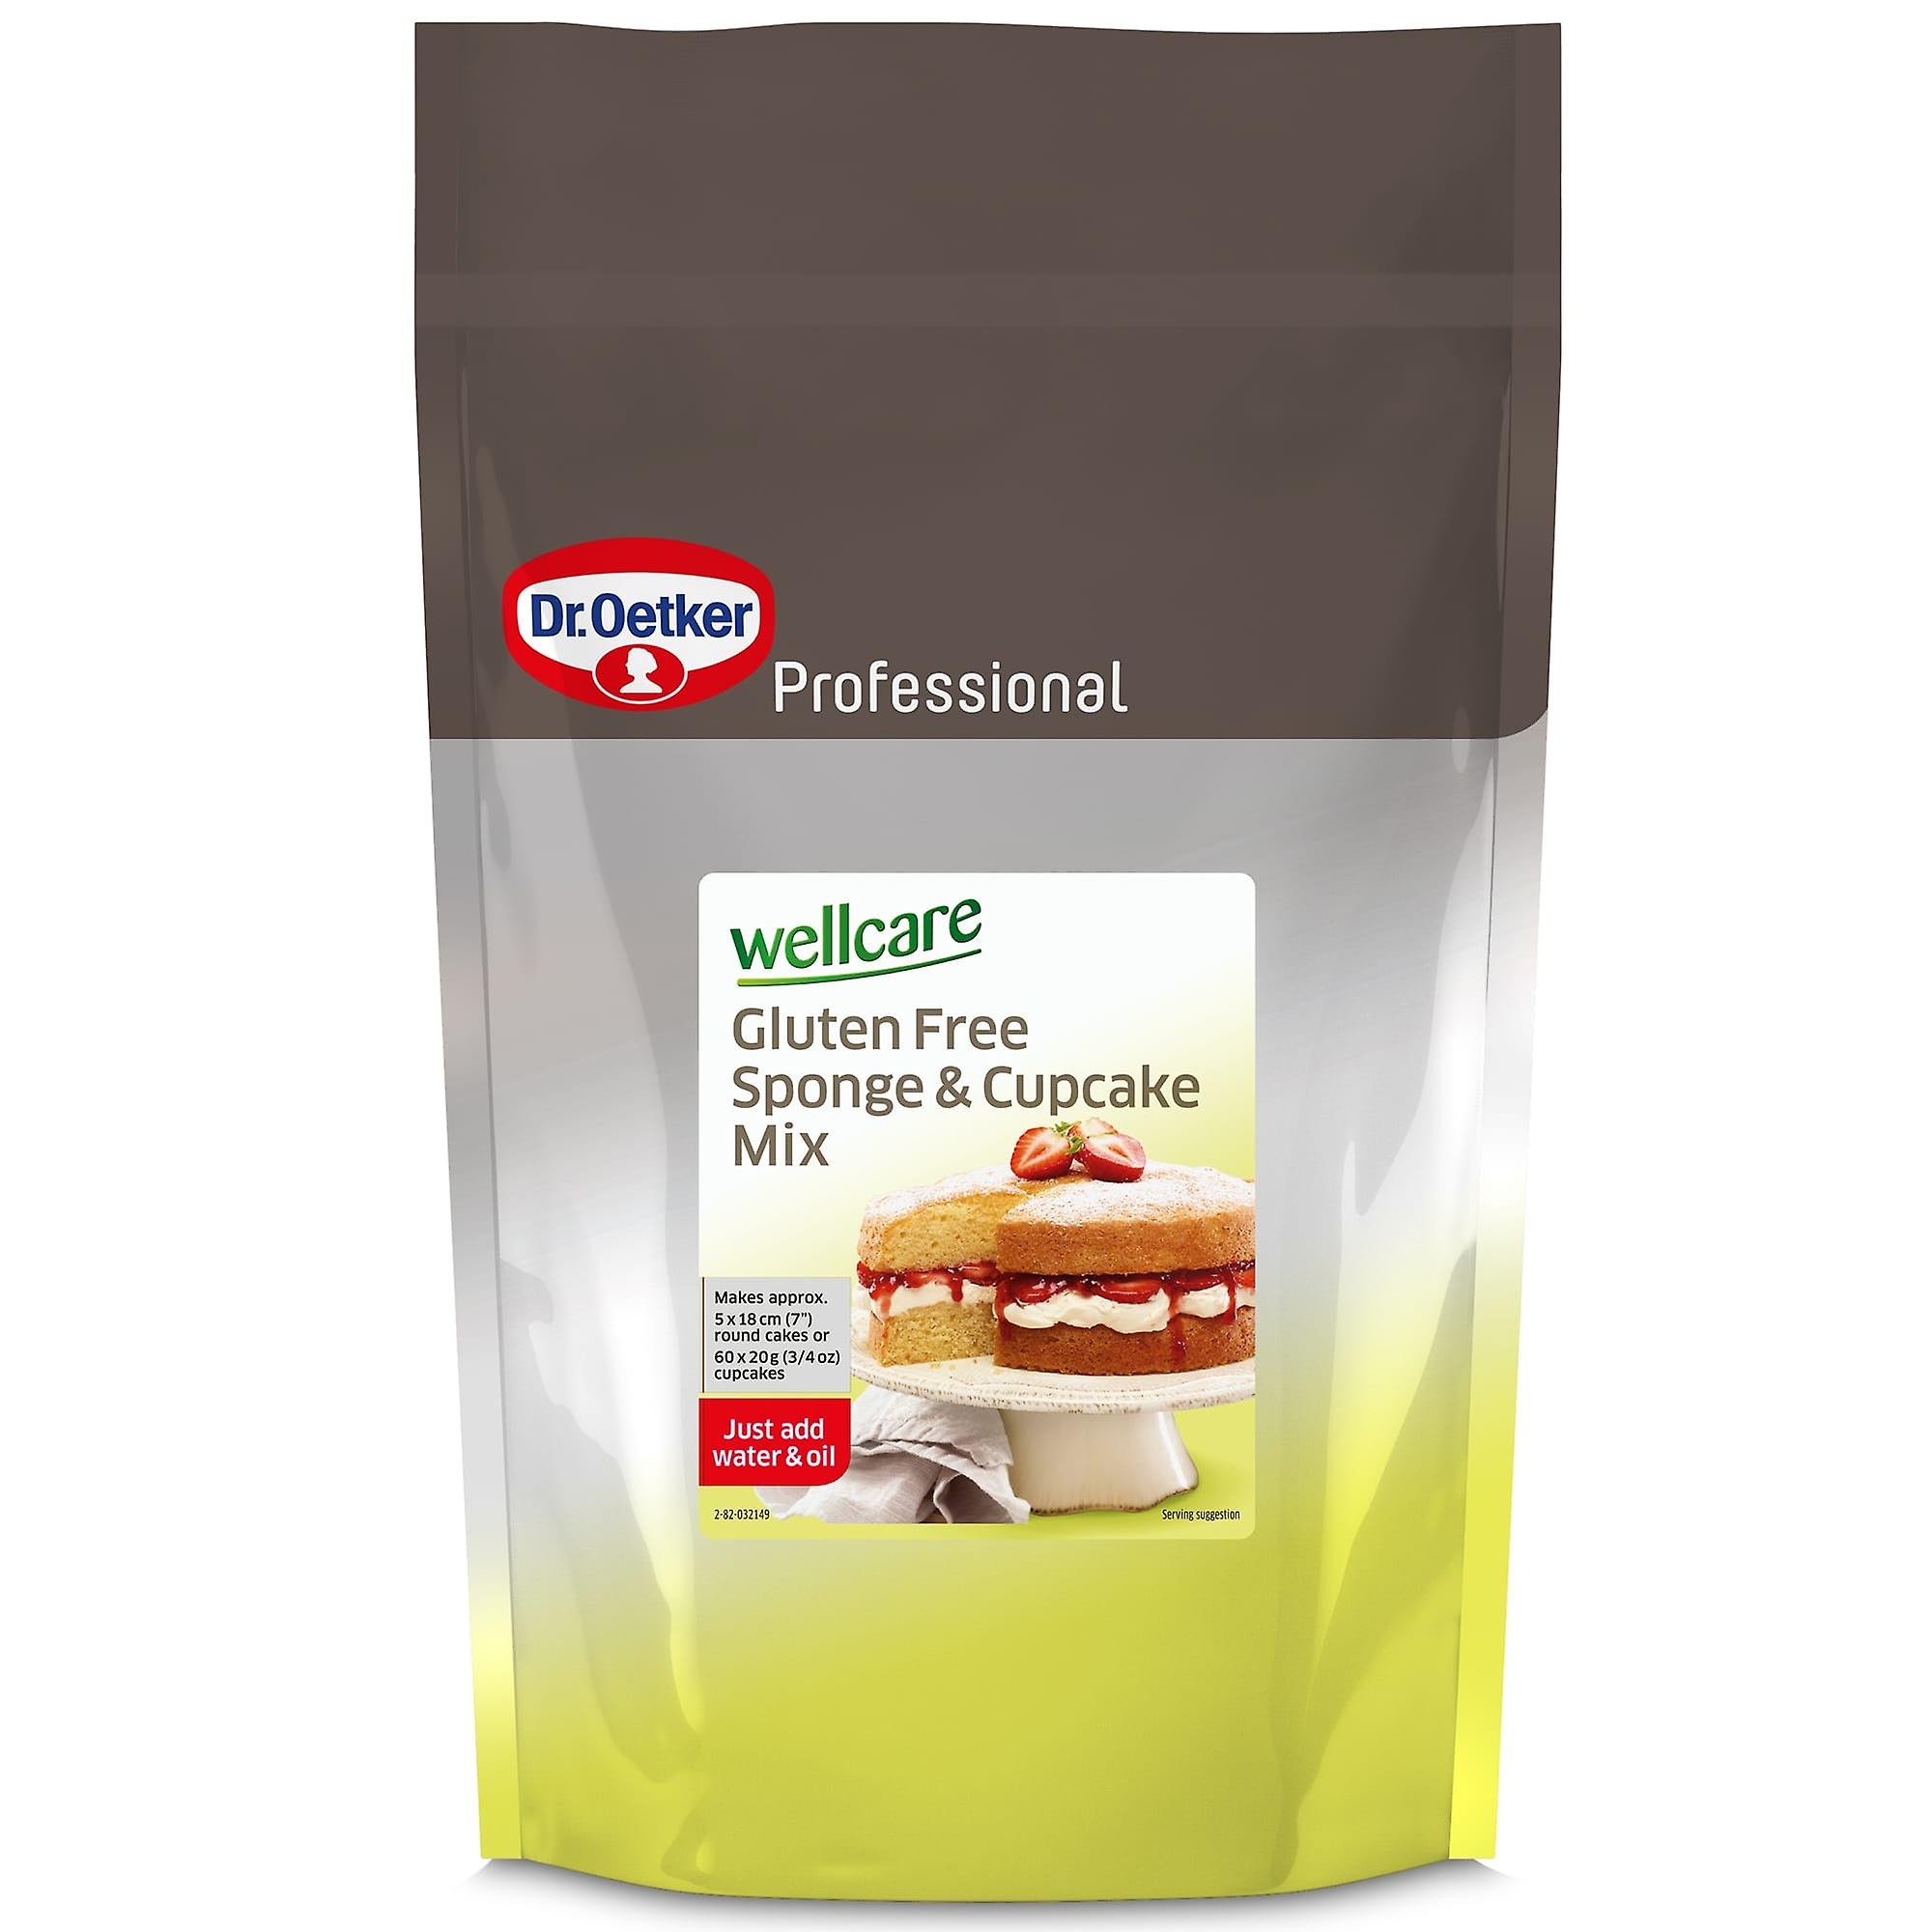 Dr Oetker Wellcare Gluten Free Sponge and Cupcake Mix